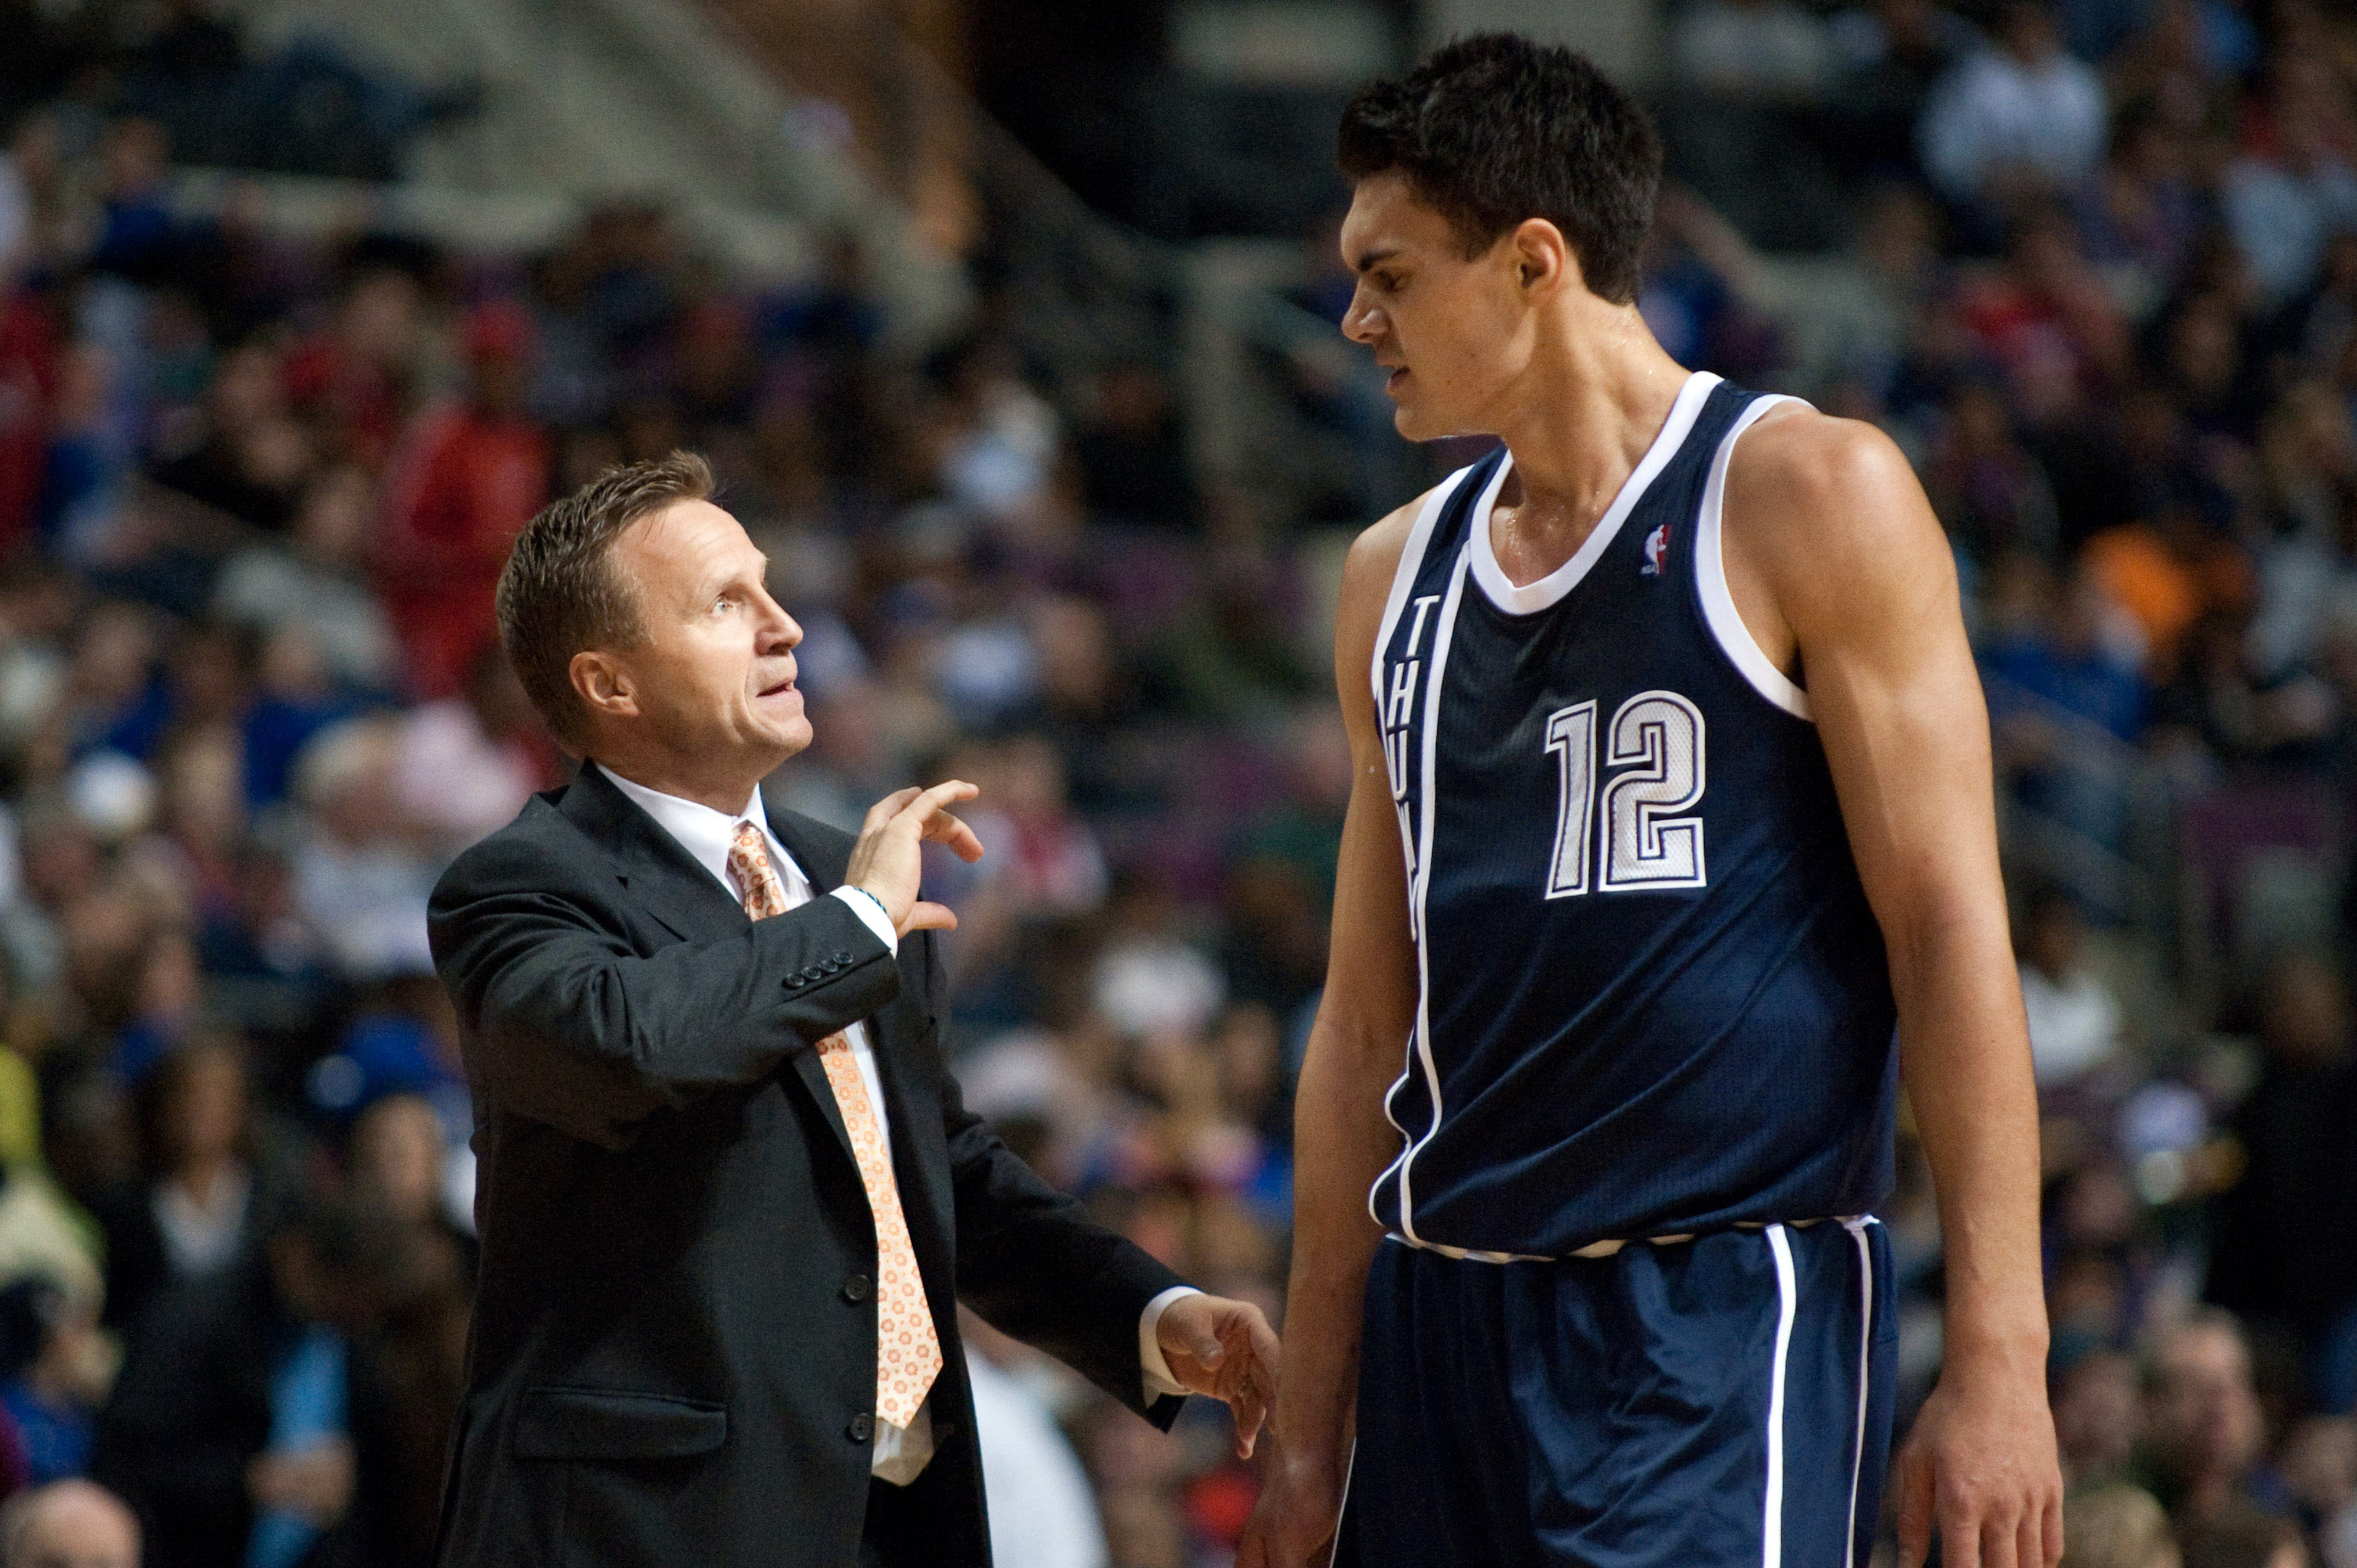 Scott Brooks is showing Steven Adams the perfect way to hold a cheeseburger.